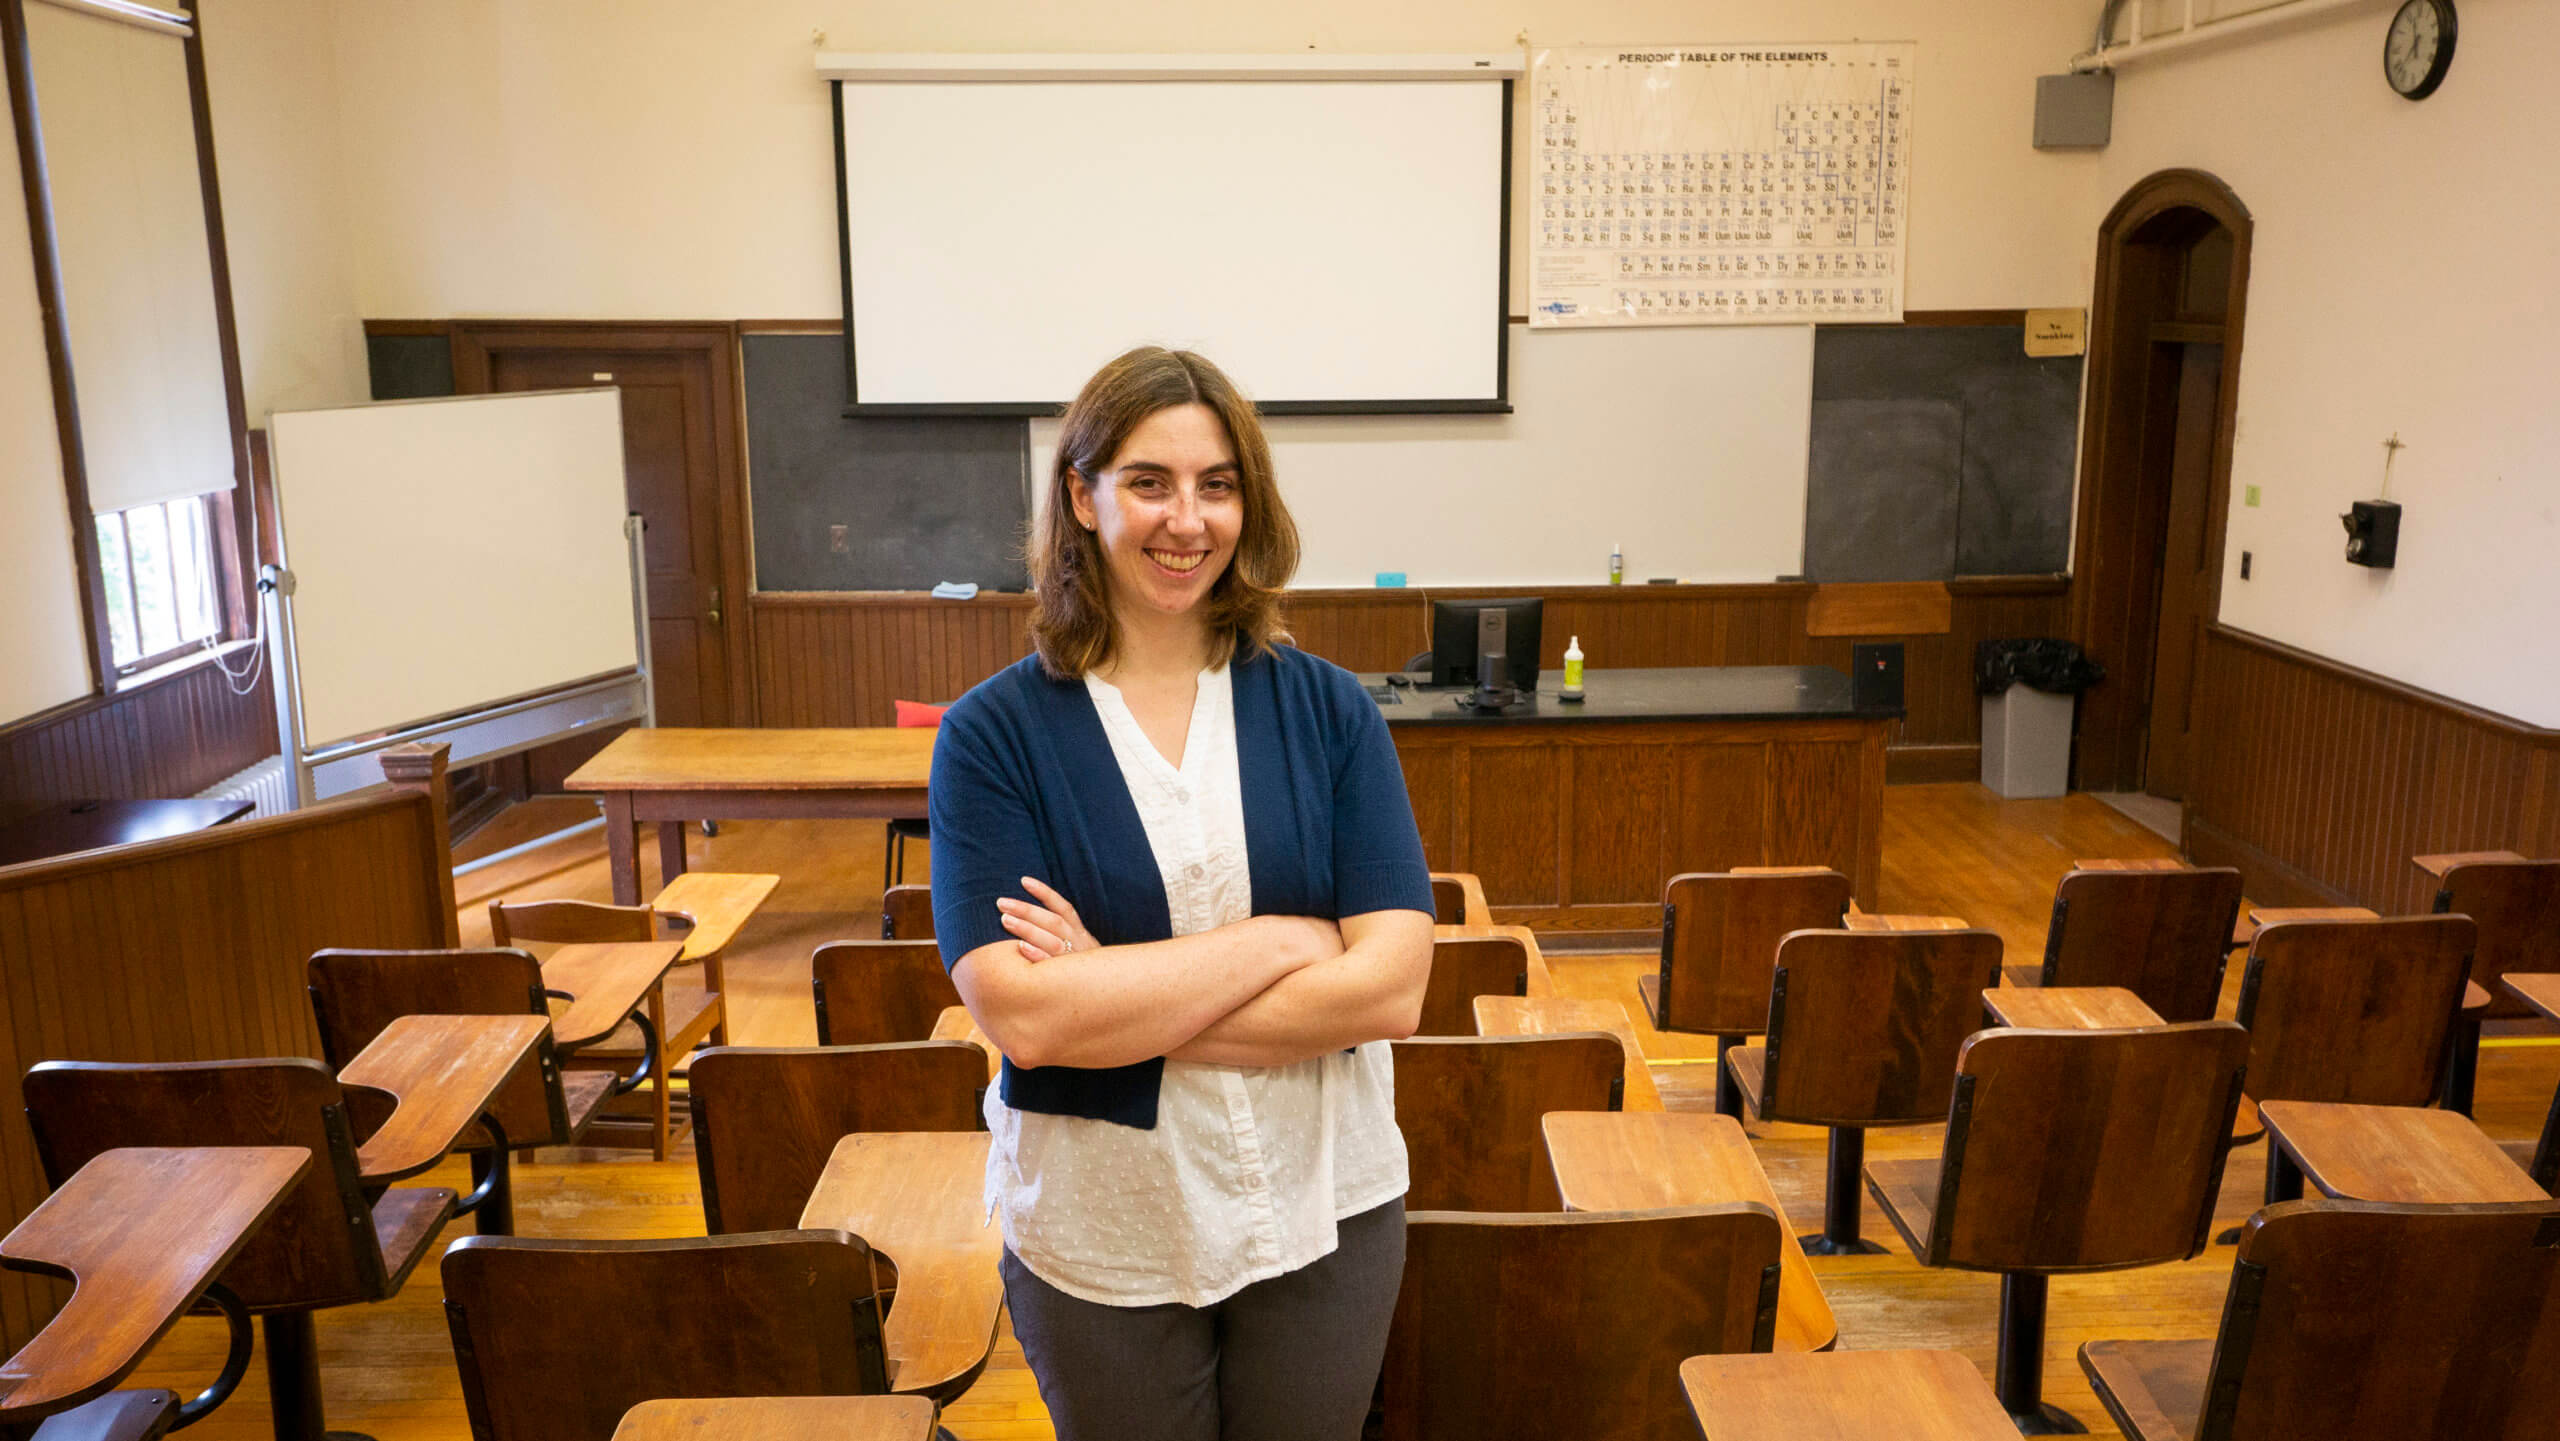 Photo of a Master of Arts in Teaching (MAT) student